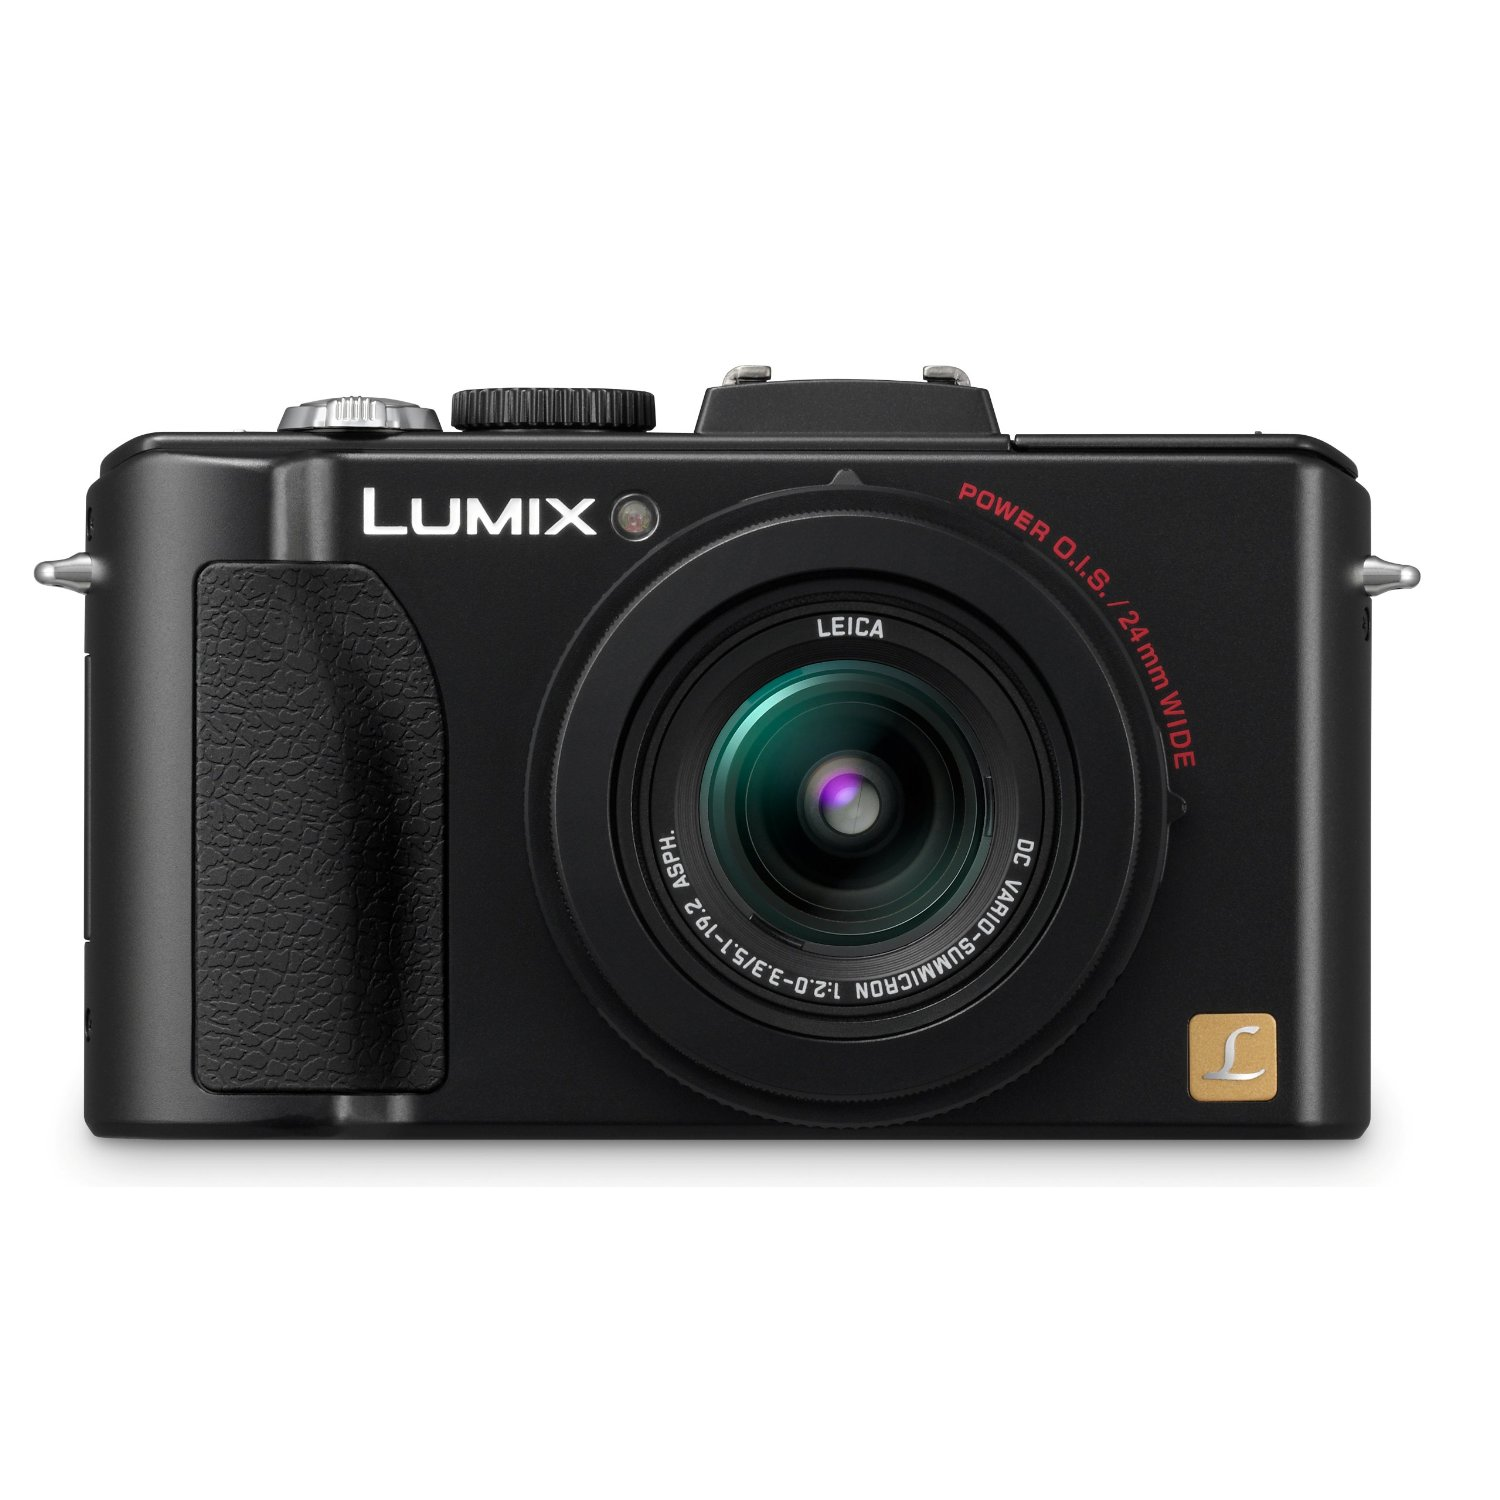 Amazon.com: Panasonic Lumix DMC-LX5 10.1 MP Digital Camera with 3.8x Optical Image Stabilized Zoom and 3.0-Inch LCD - Black: Camera & Photo